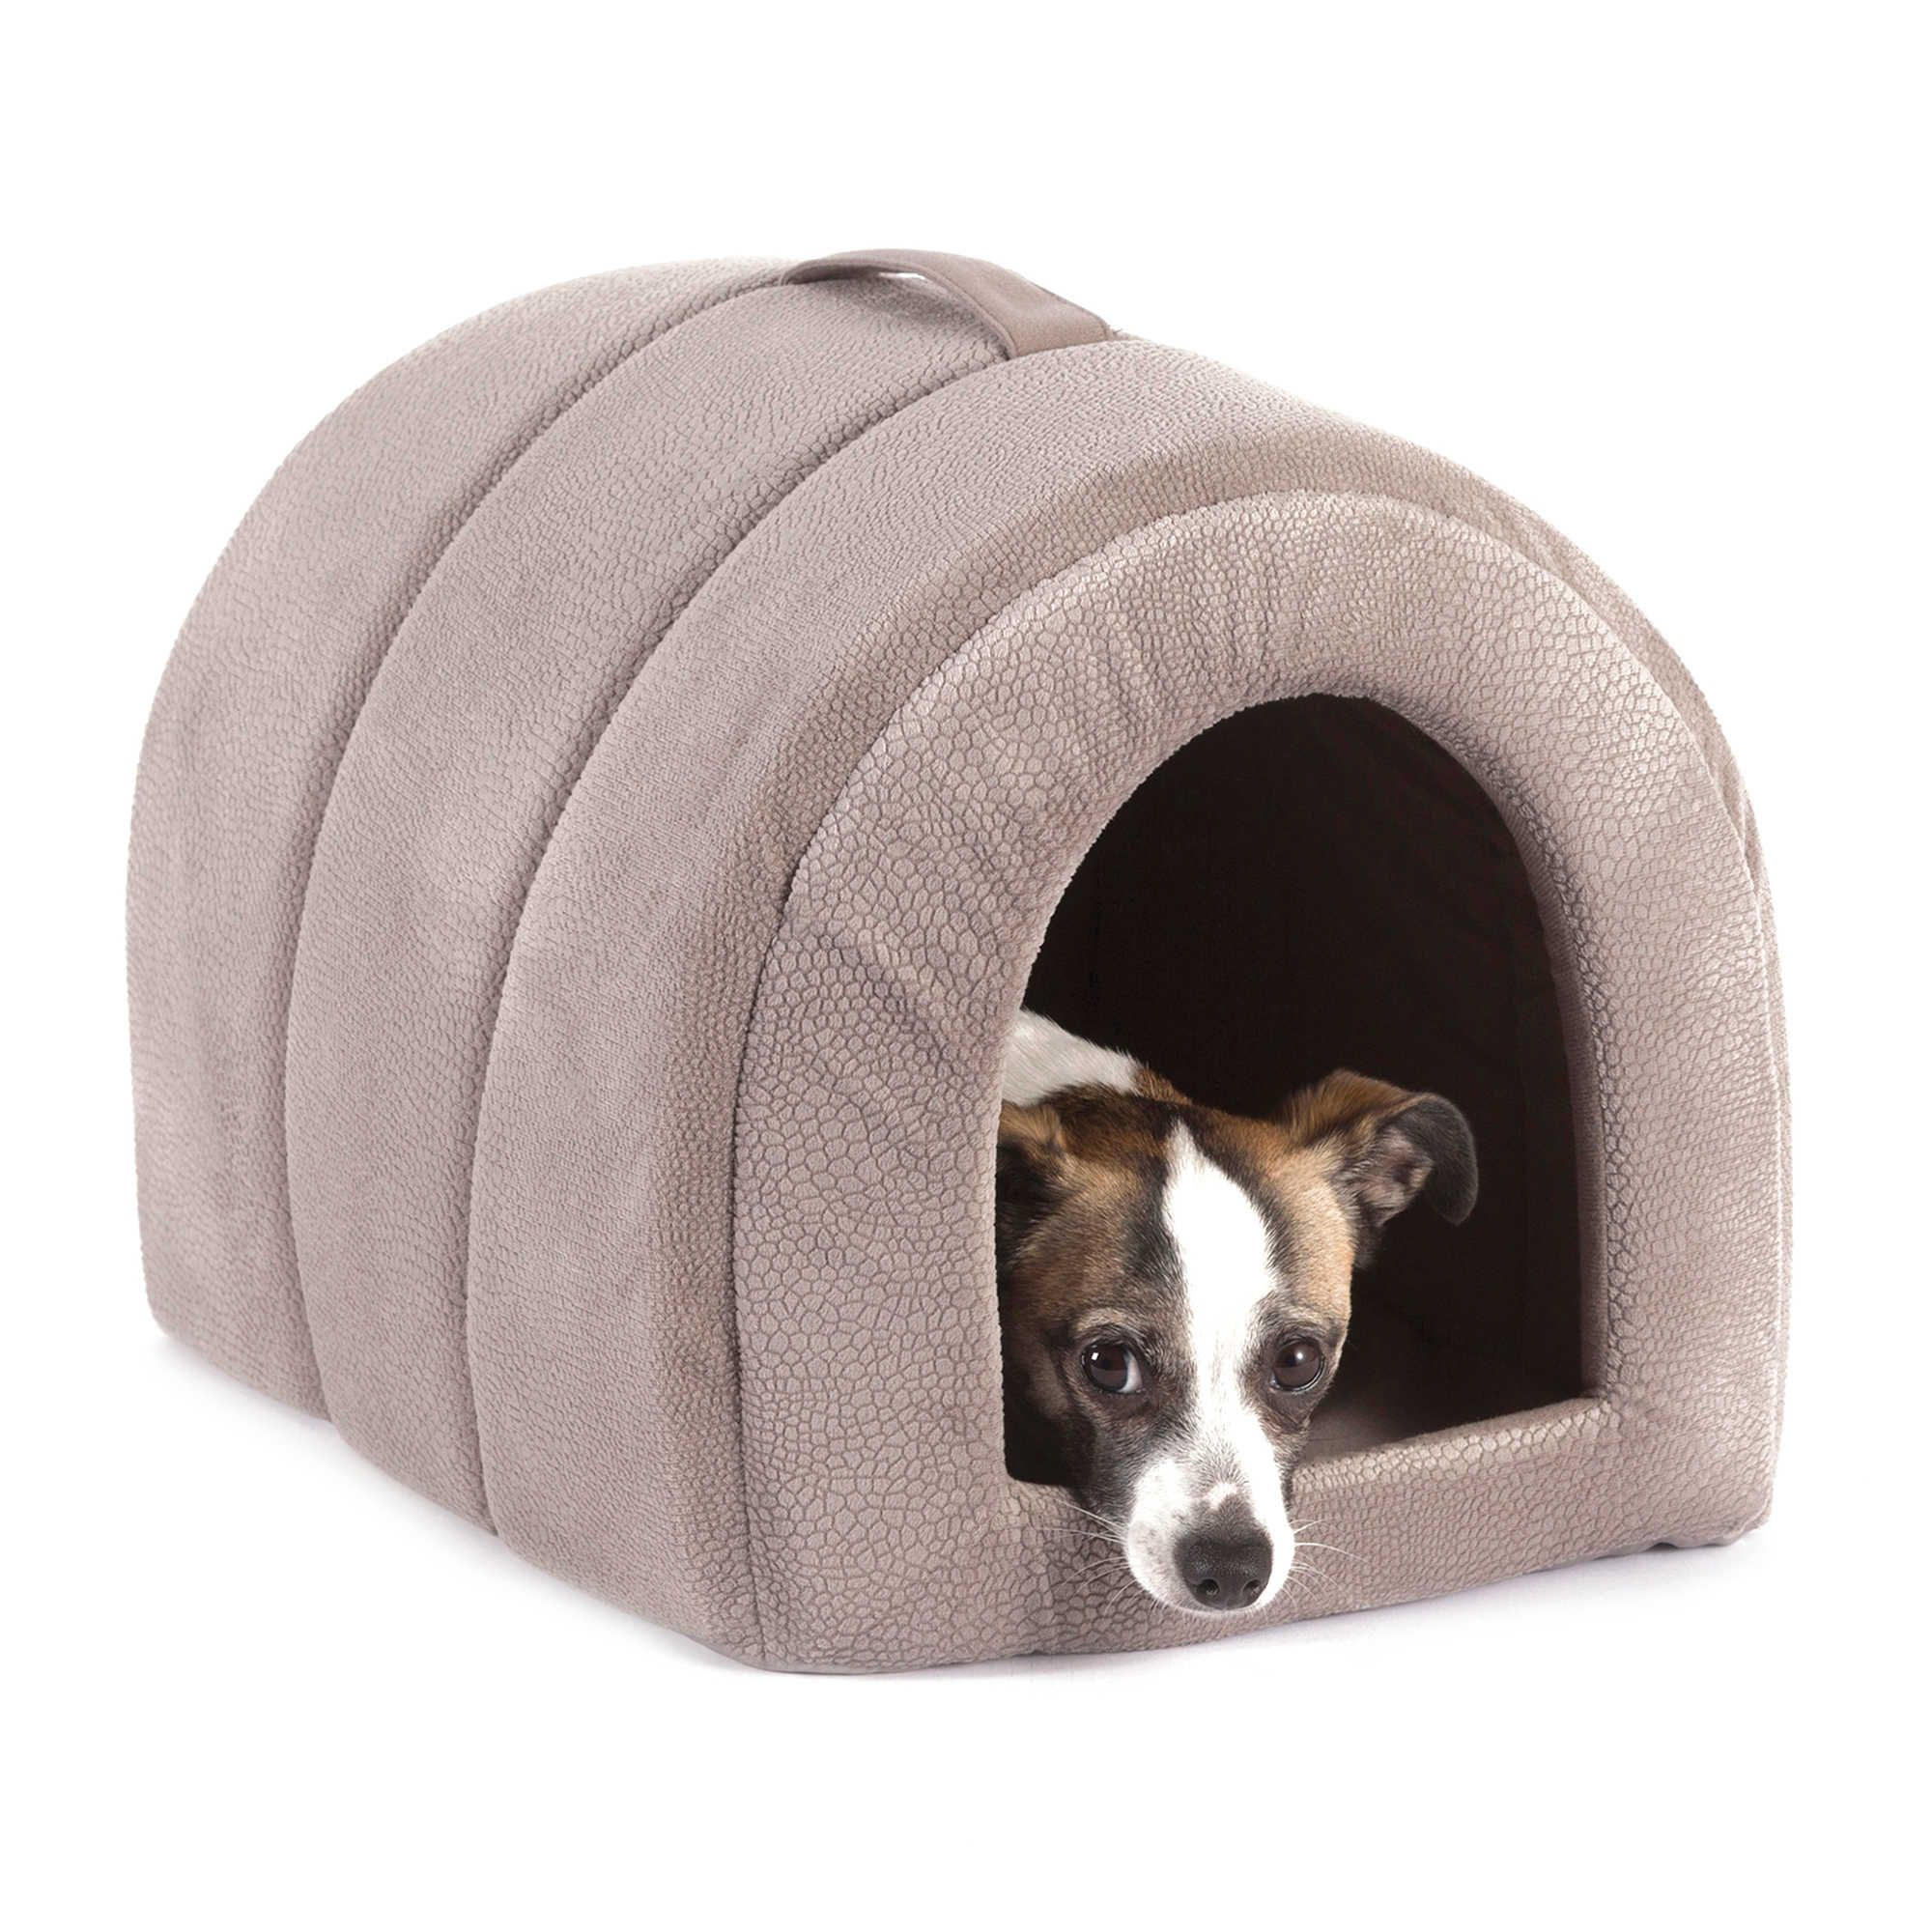 Best Friends by Sheri Small Embossed Igloo Pet Bed in Grey